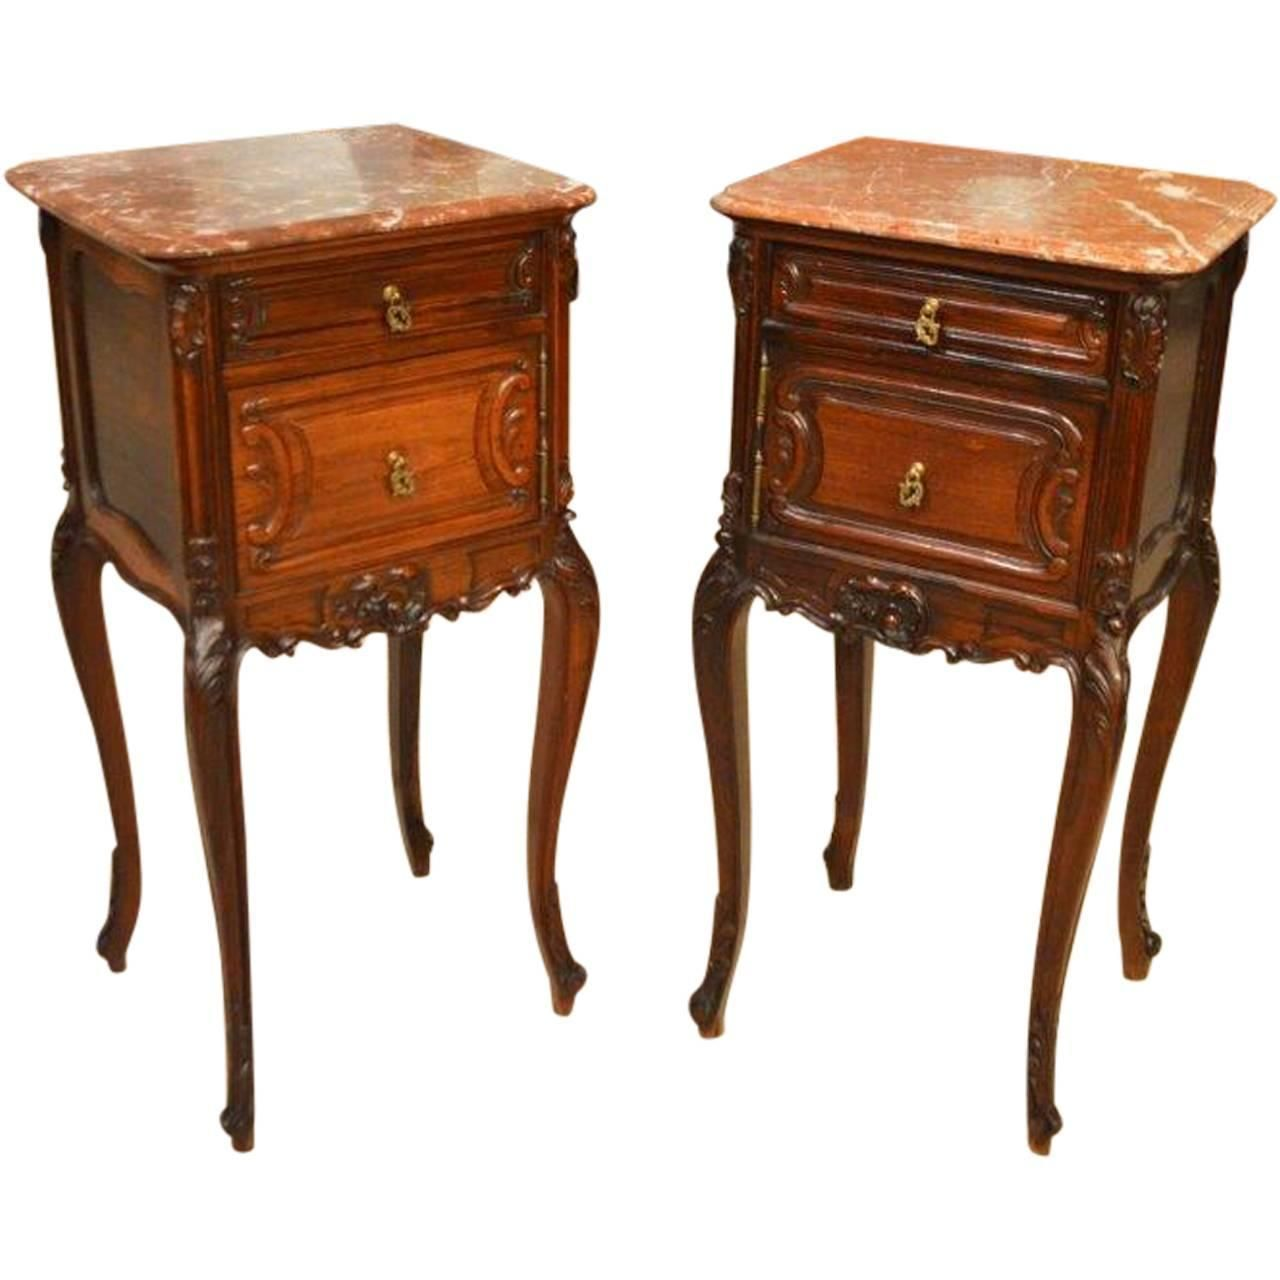 Superior Pair of Rosewood French Rococo Antique Bedside